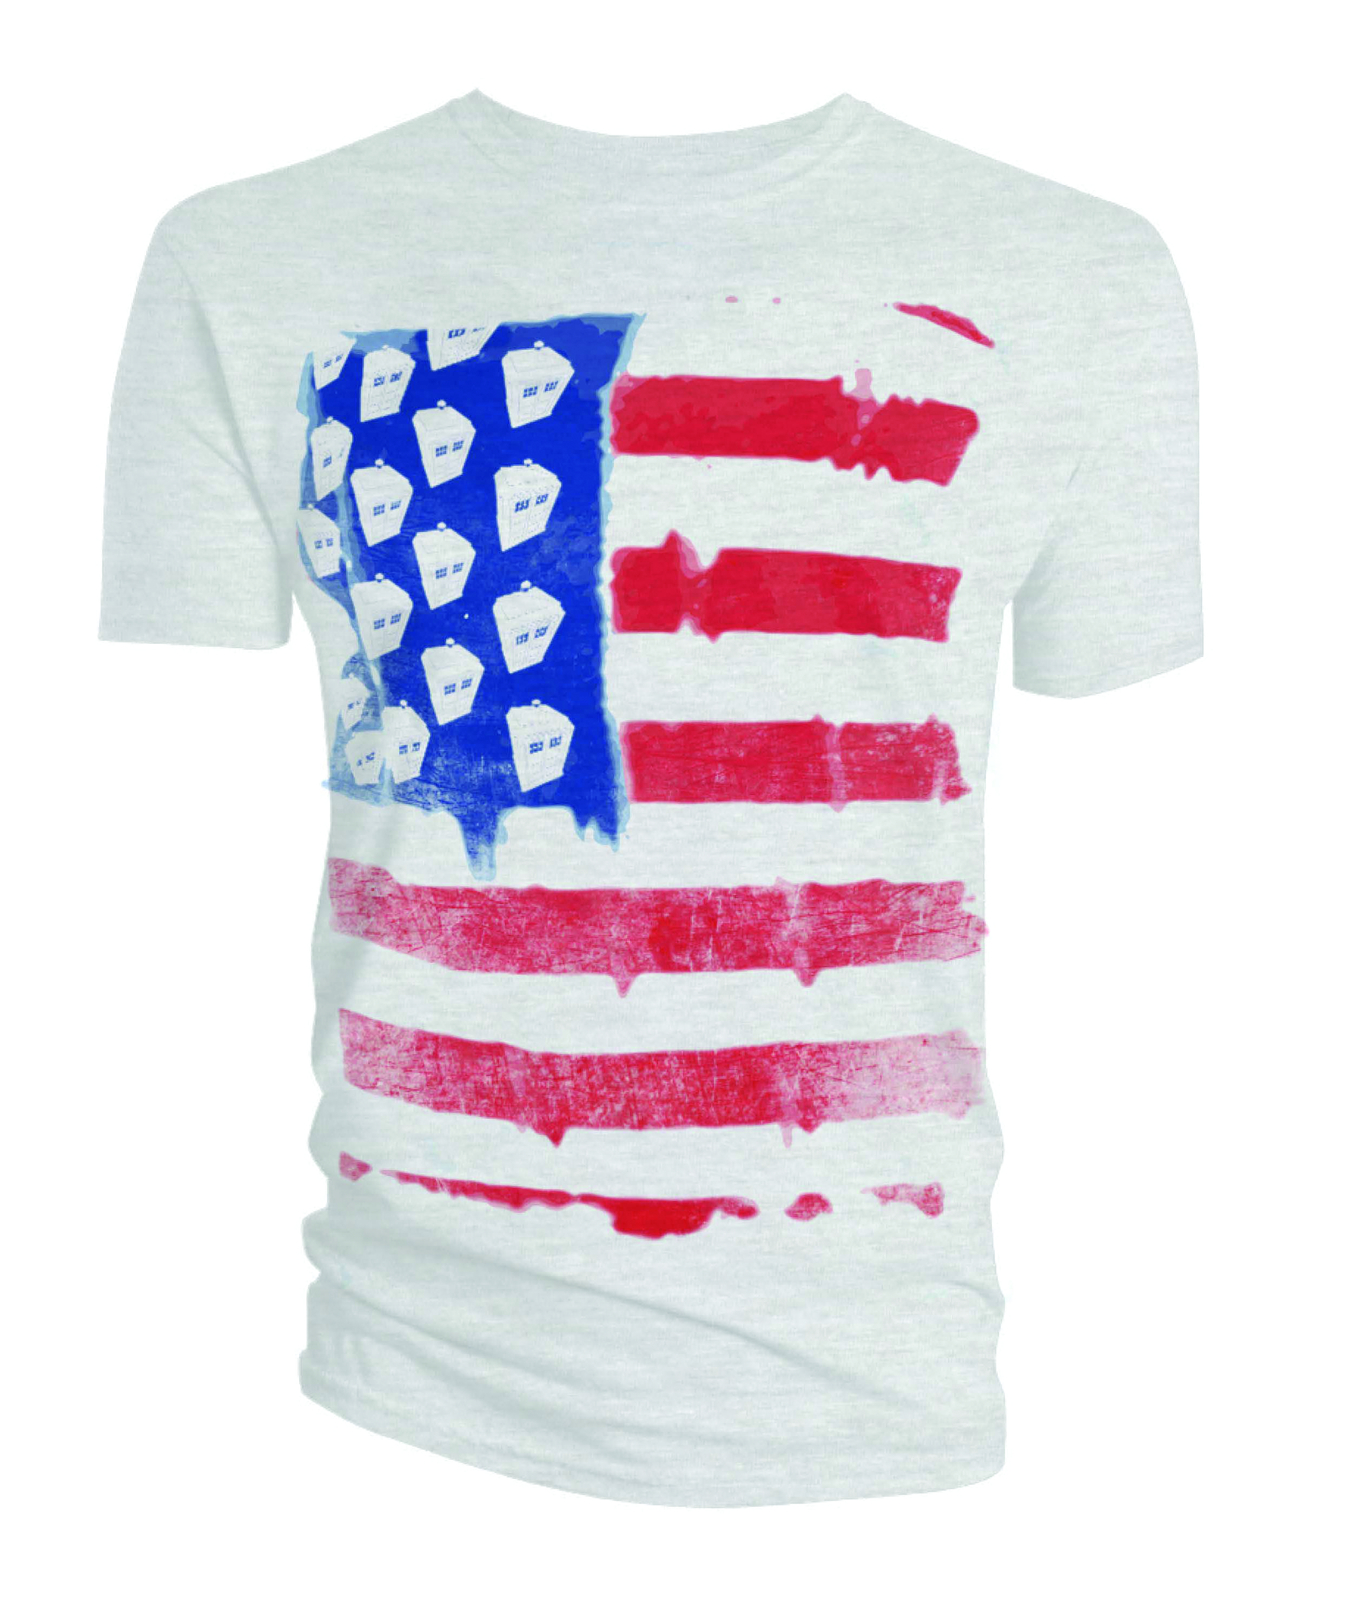 DOCTOR WHO STARS AND STRIPES T/S MED